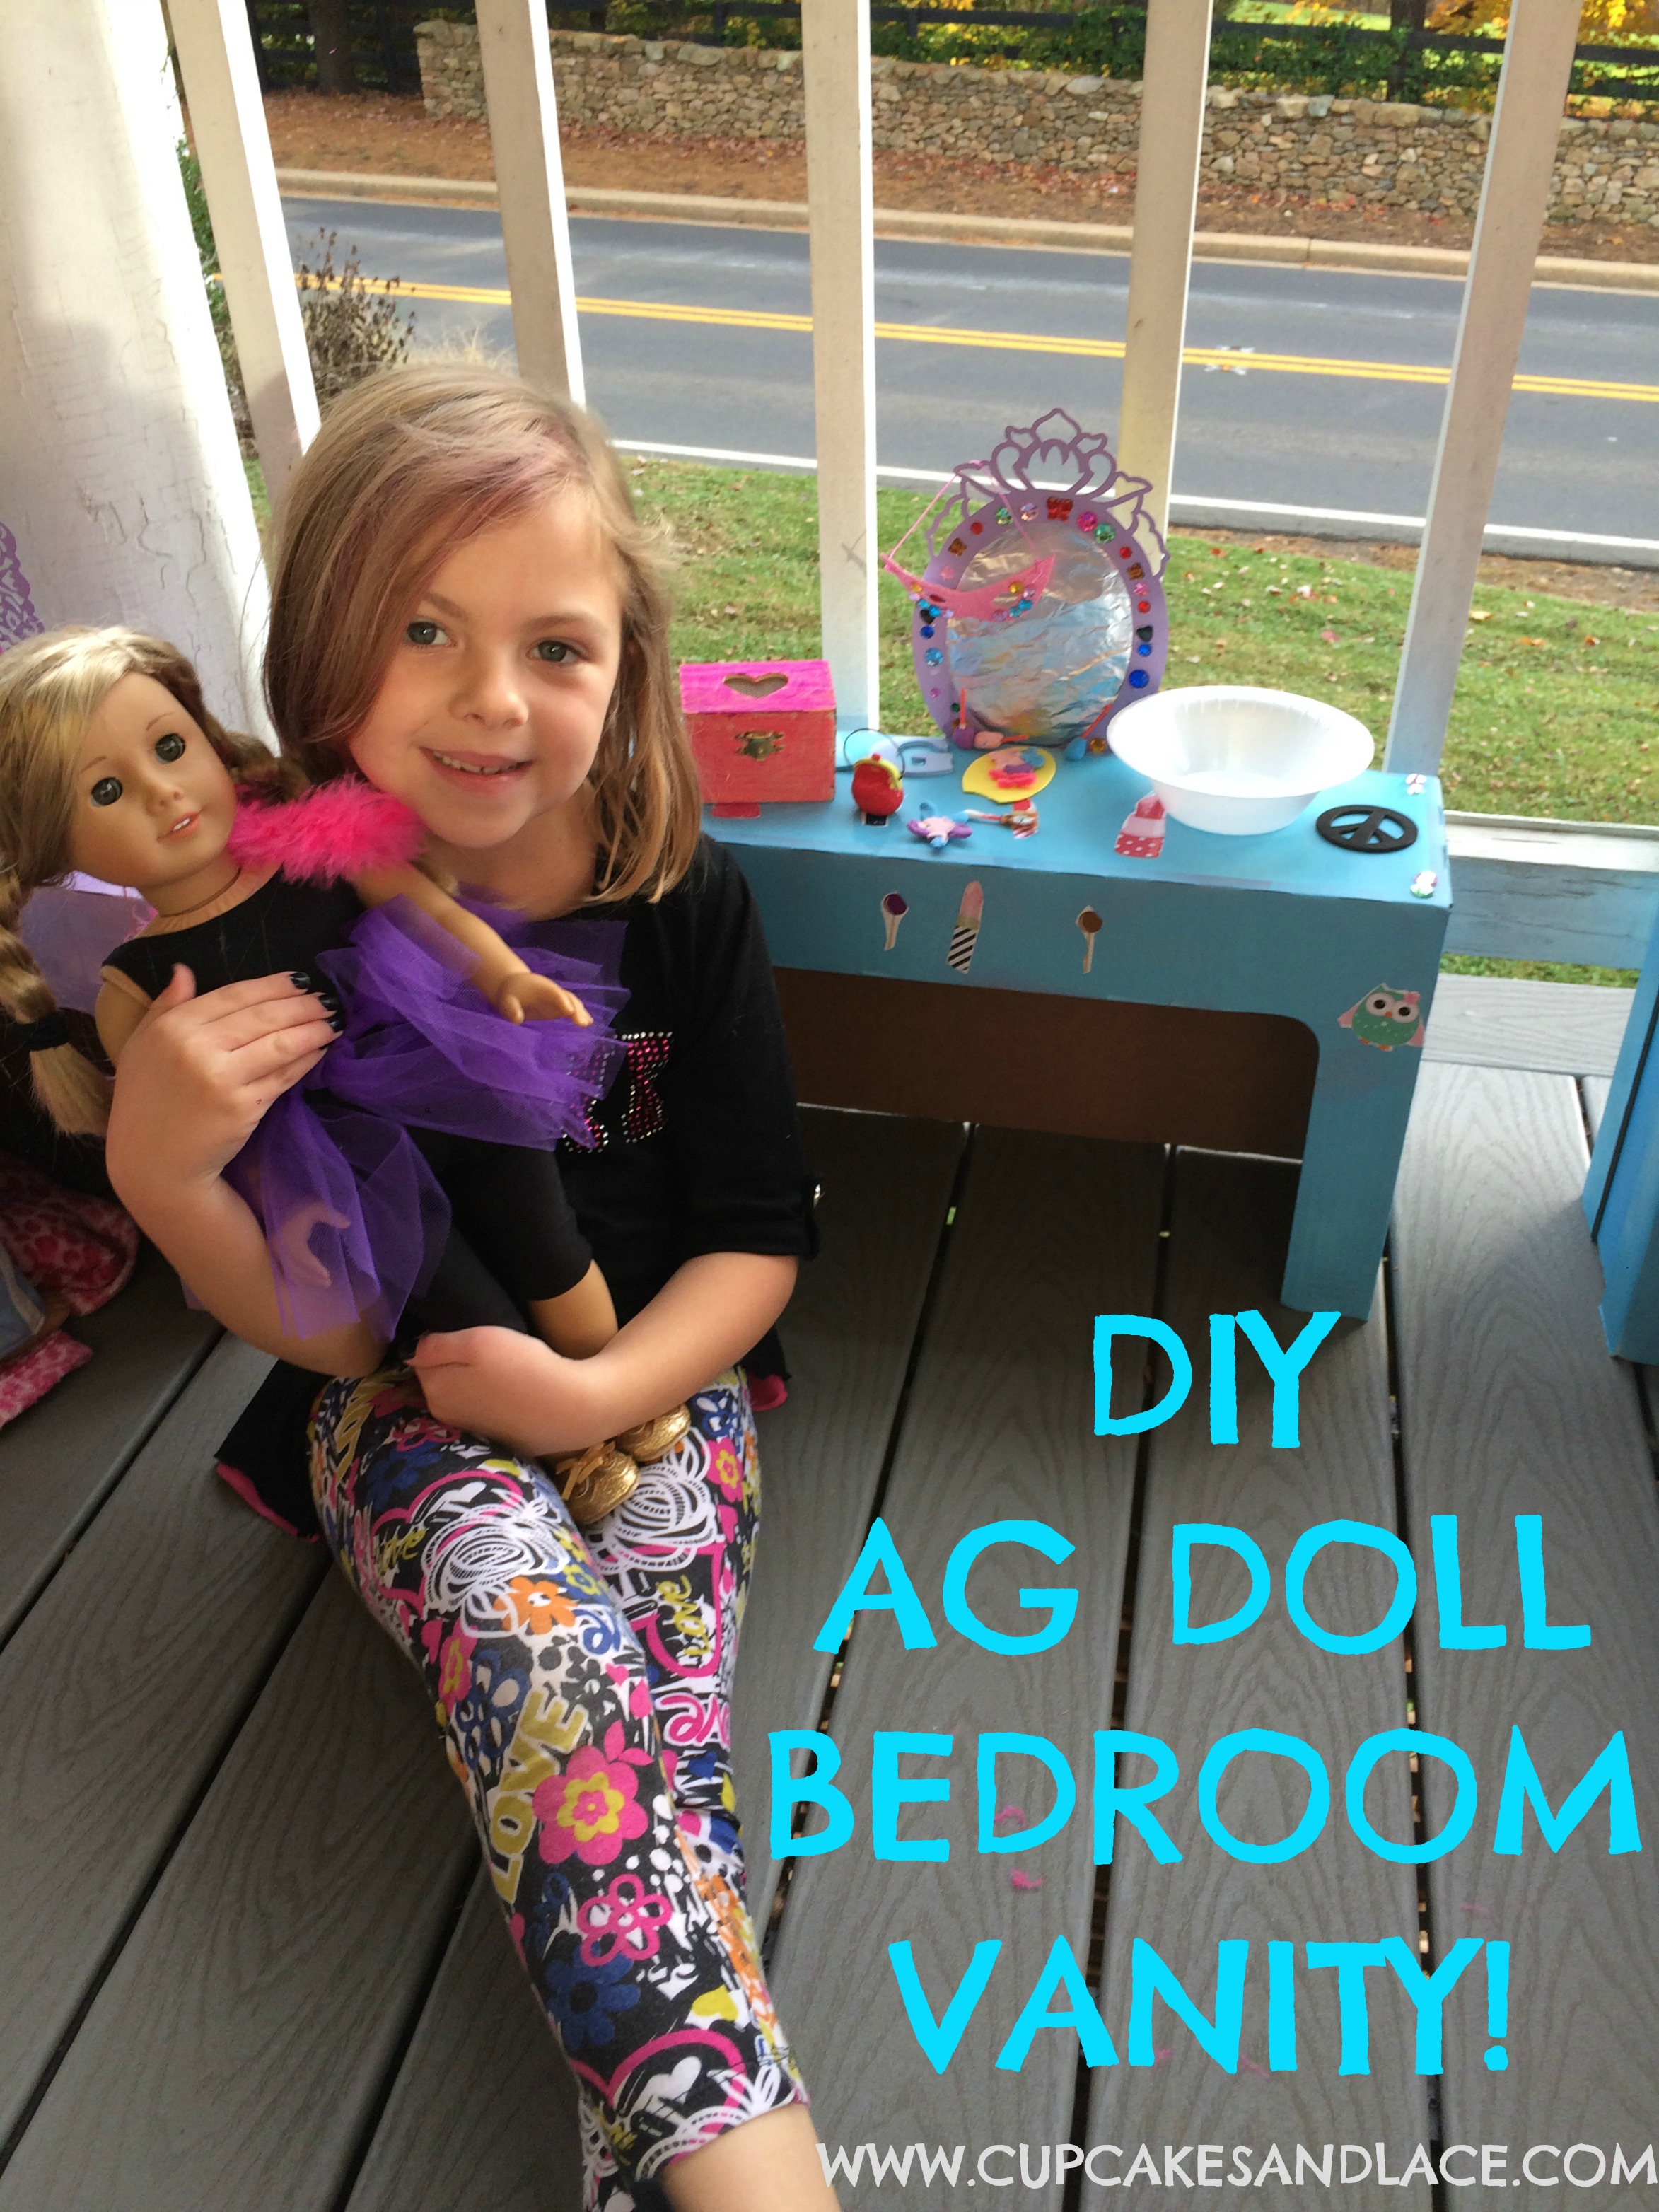 Craft Your Own American Girl Doll Bedroom Vanity Cupcakes Lace